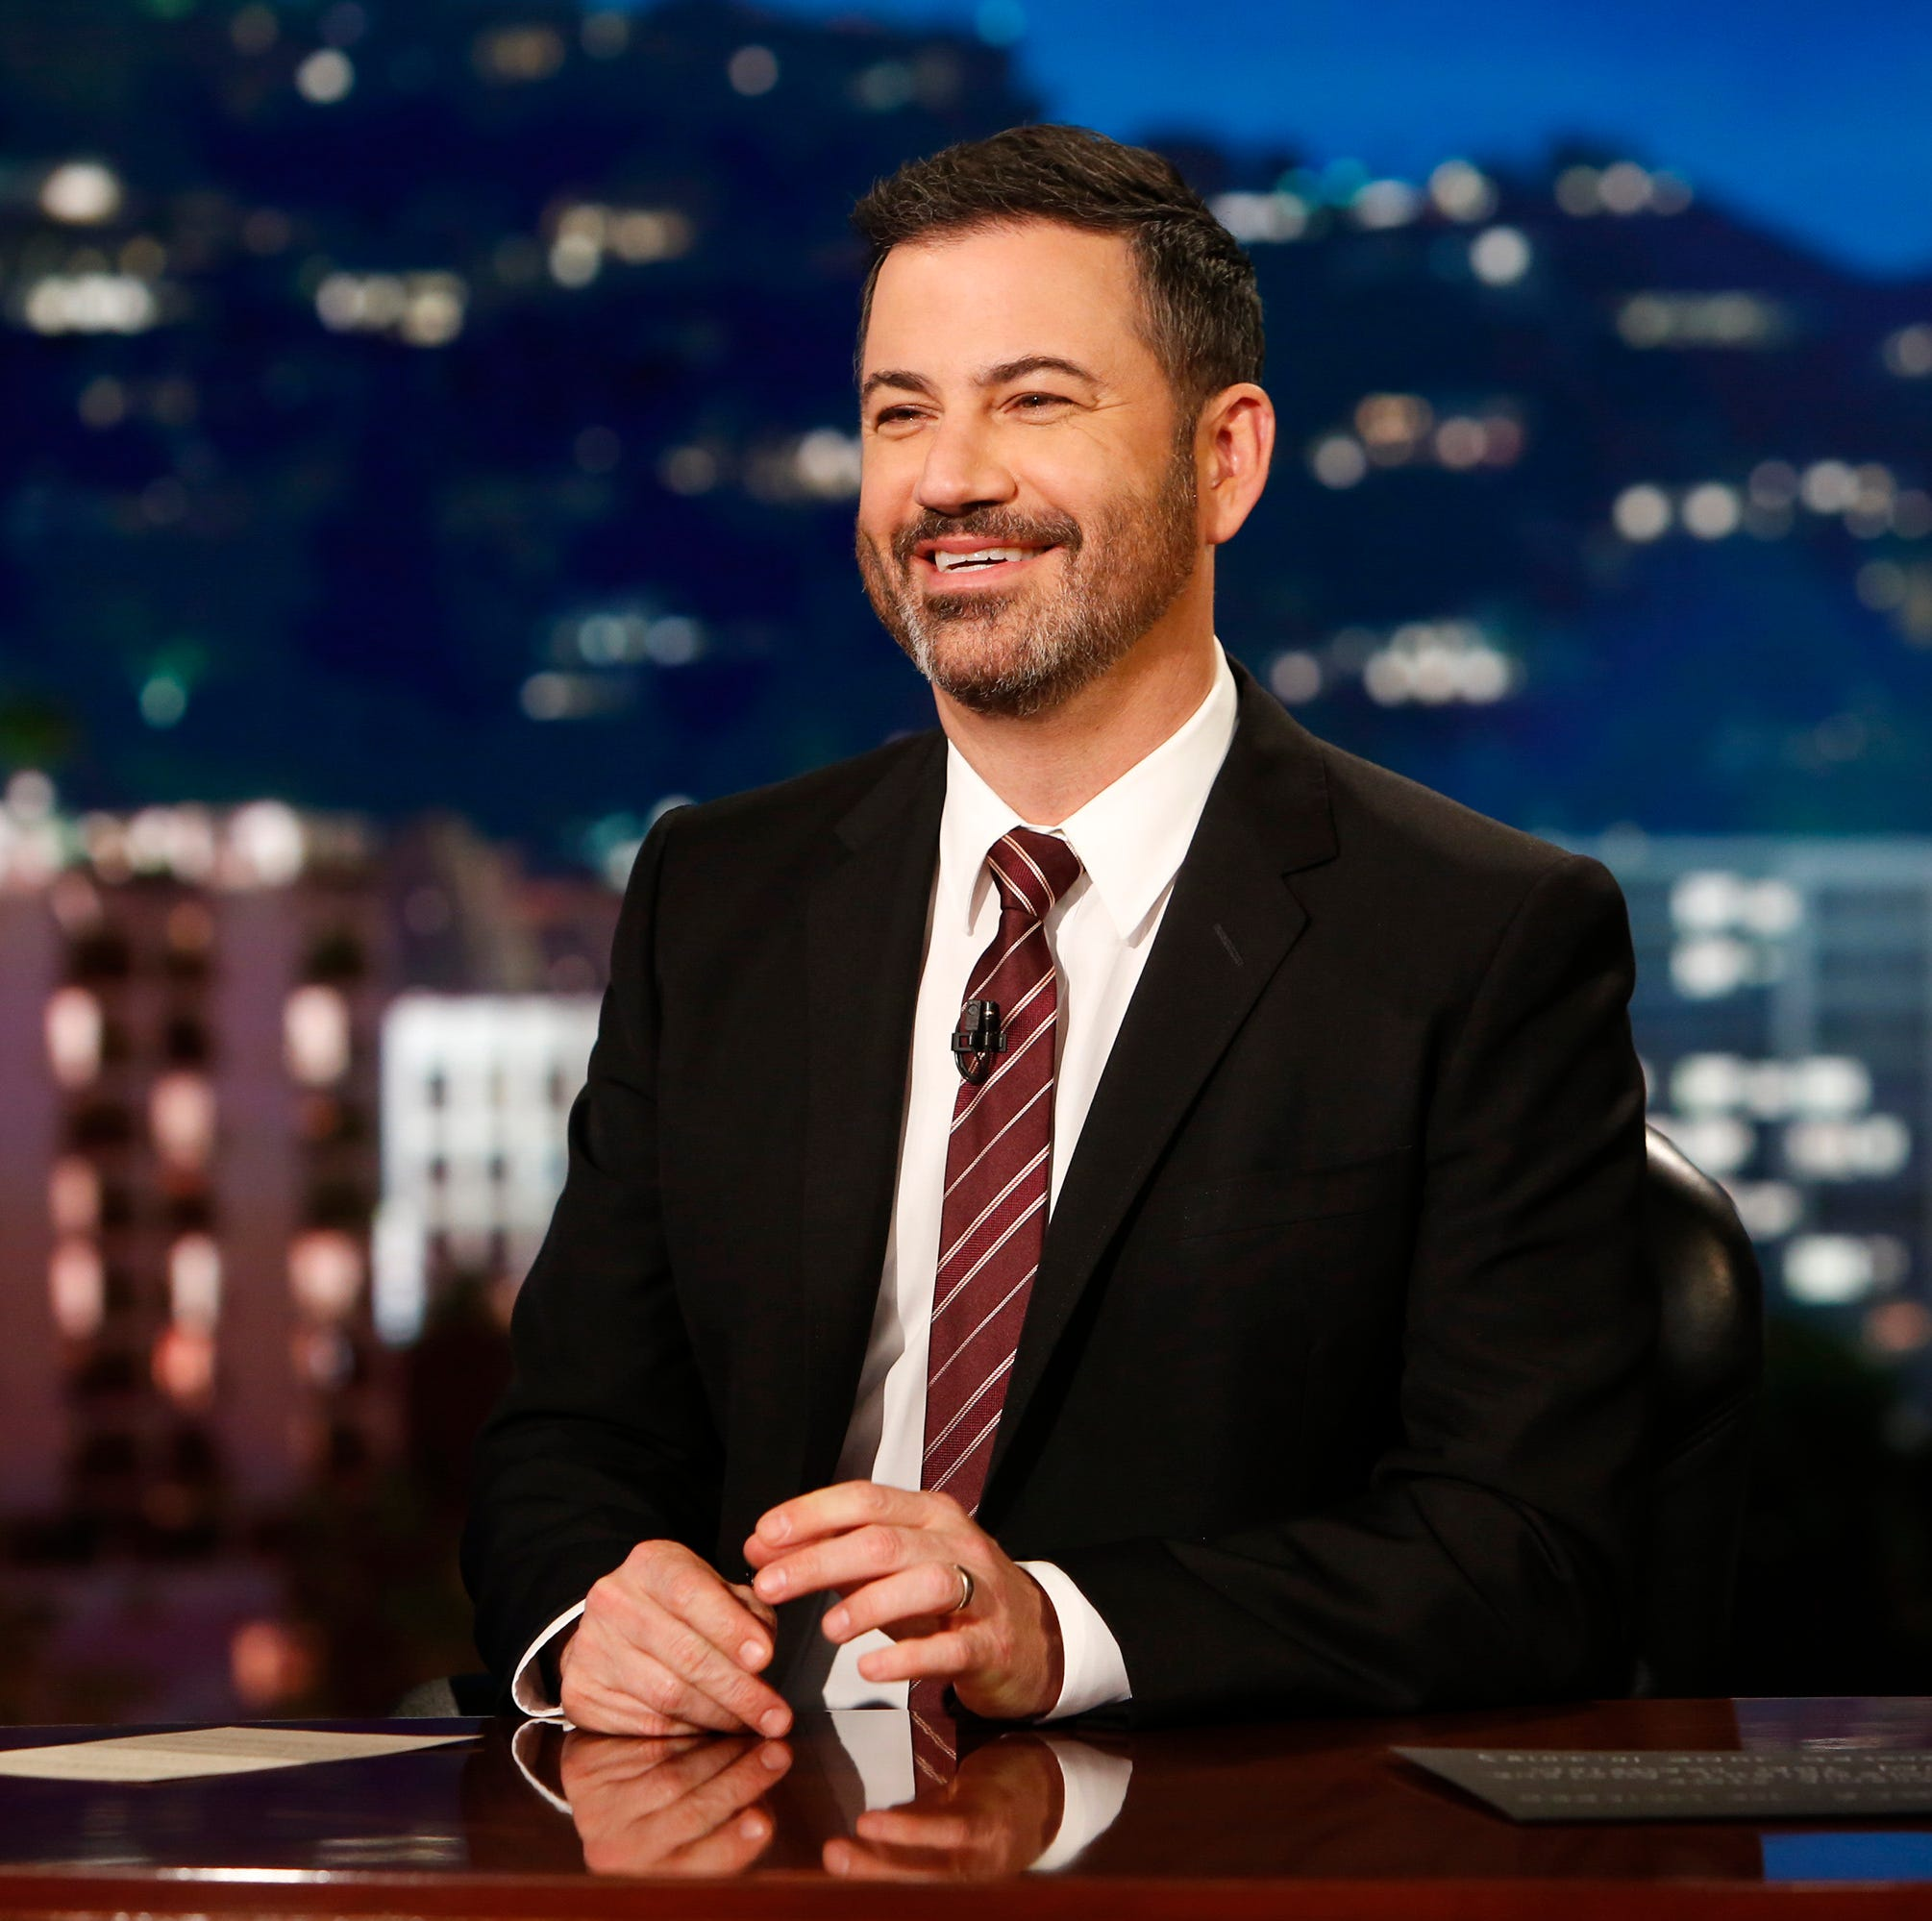 Jimmy Kimmel, host of ABC's 'Jimmy Kimmel Live!,' is teaming with legendary producer Norman Lear and a star-studded cast for a special that will celebrate and re-create episodes of Lear's 'All in the Family' and 'The Jeffersons.'